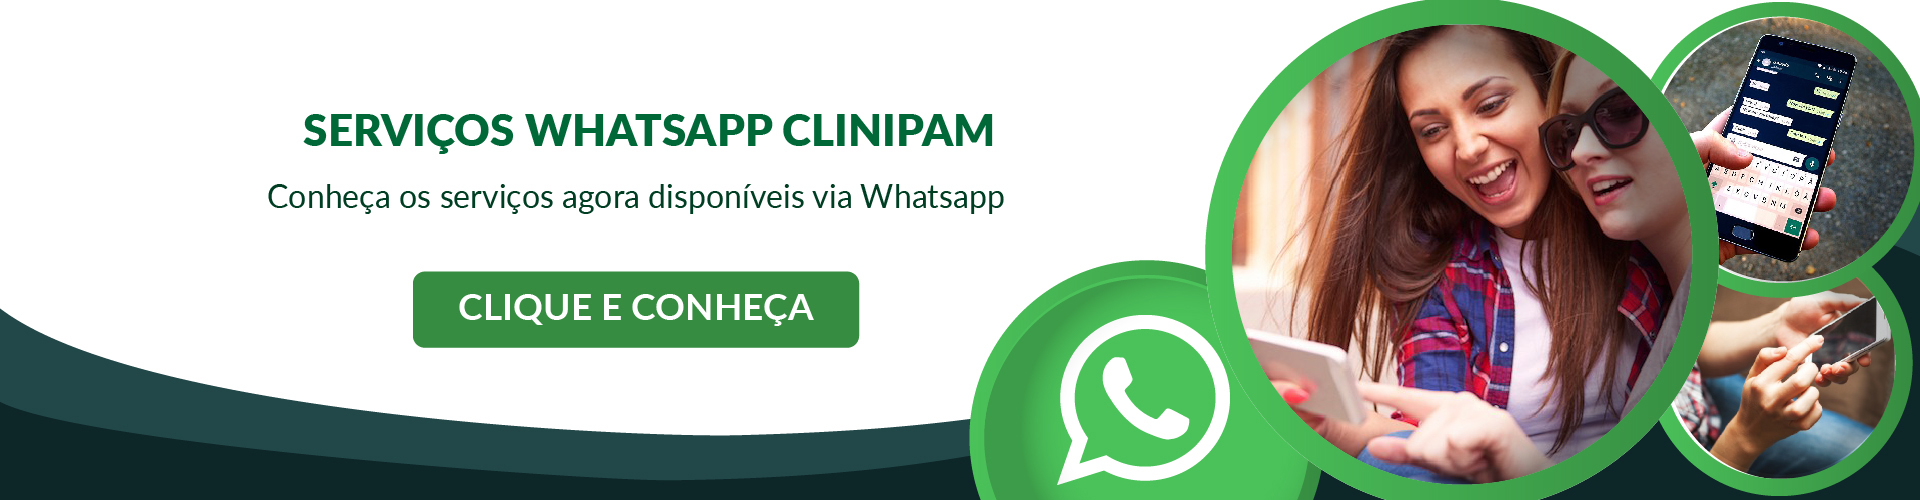 Whatsapp Clinipam